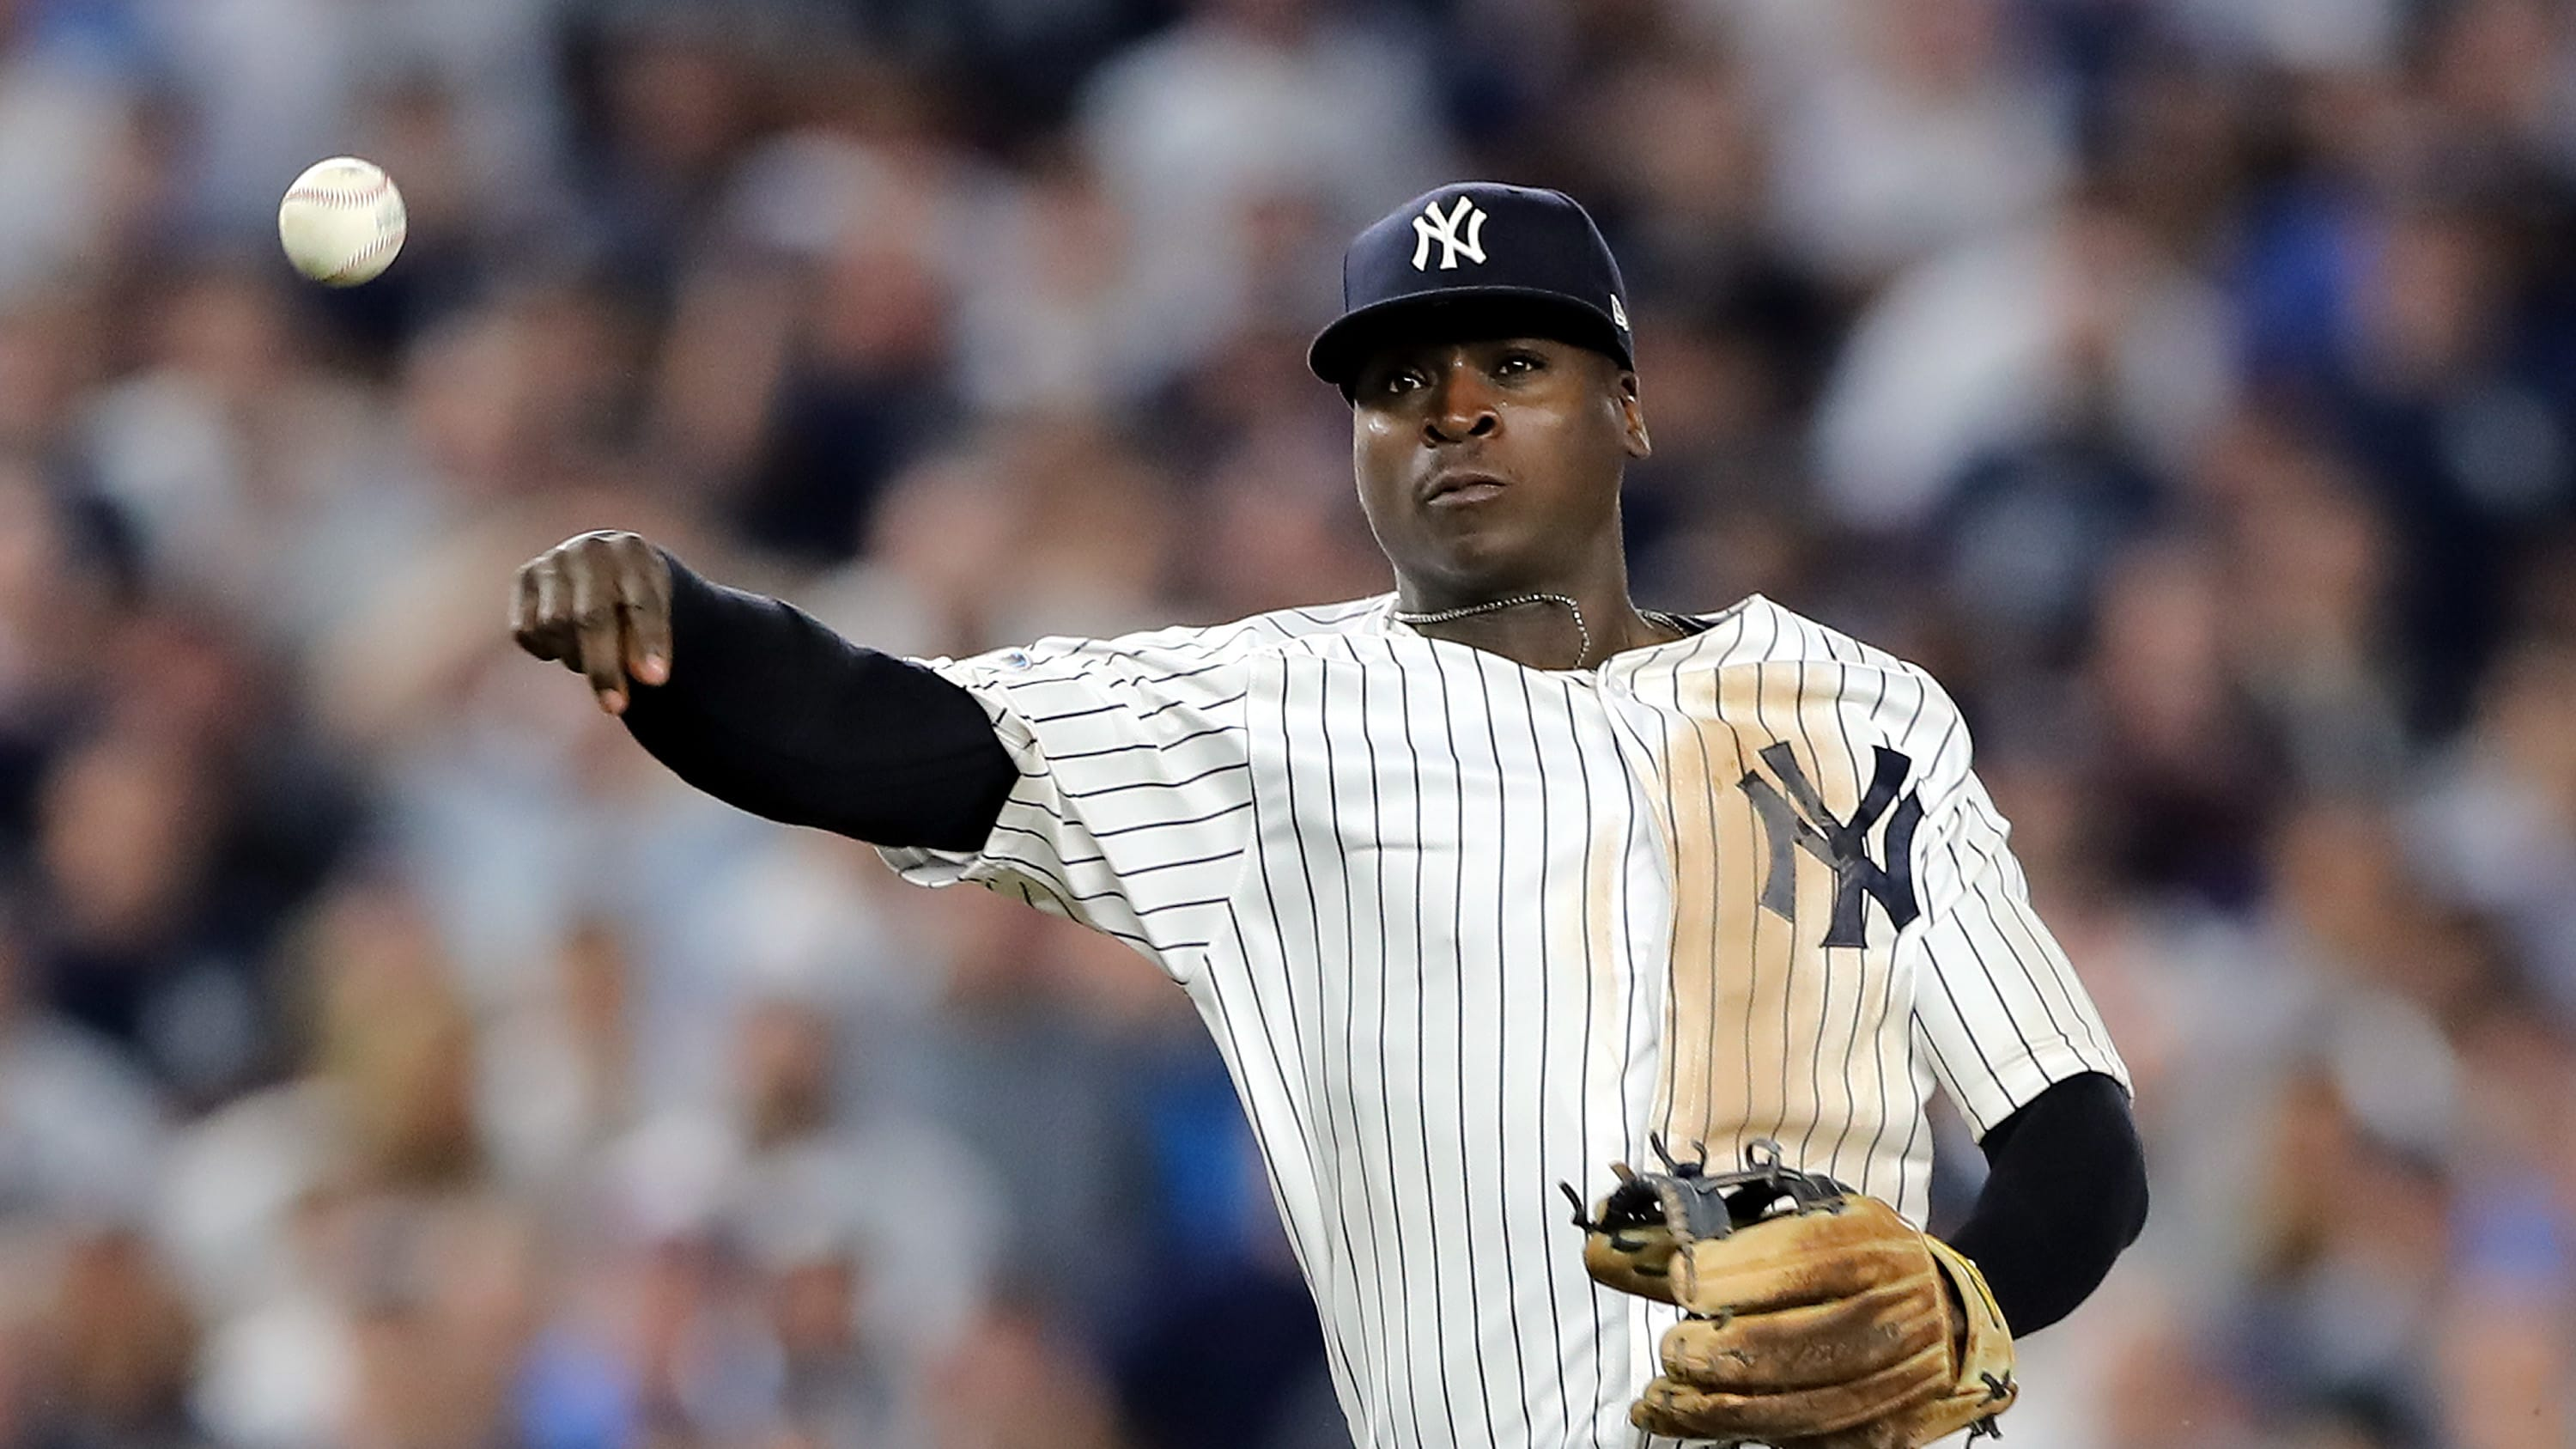 NEW YORK, NEW YORK - OCTOBER 09:   Didi Gregorius #18 of the New York Yankees throws to first base against the Boston Red Sox during Game Four American League Division Series at Yankee Stadium on October 09, 2018 in the Bronx borough of New York City. (Photo by Elsa/Getty Images)